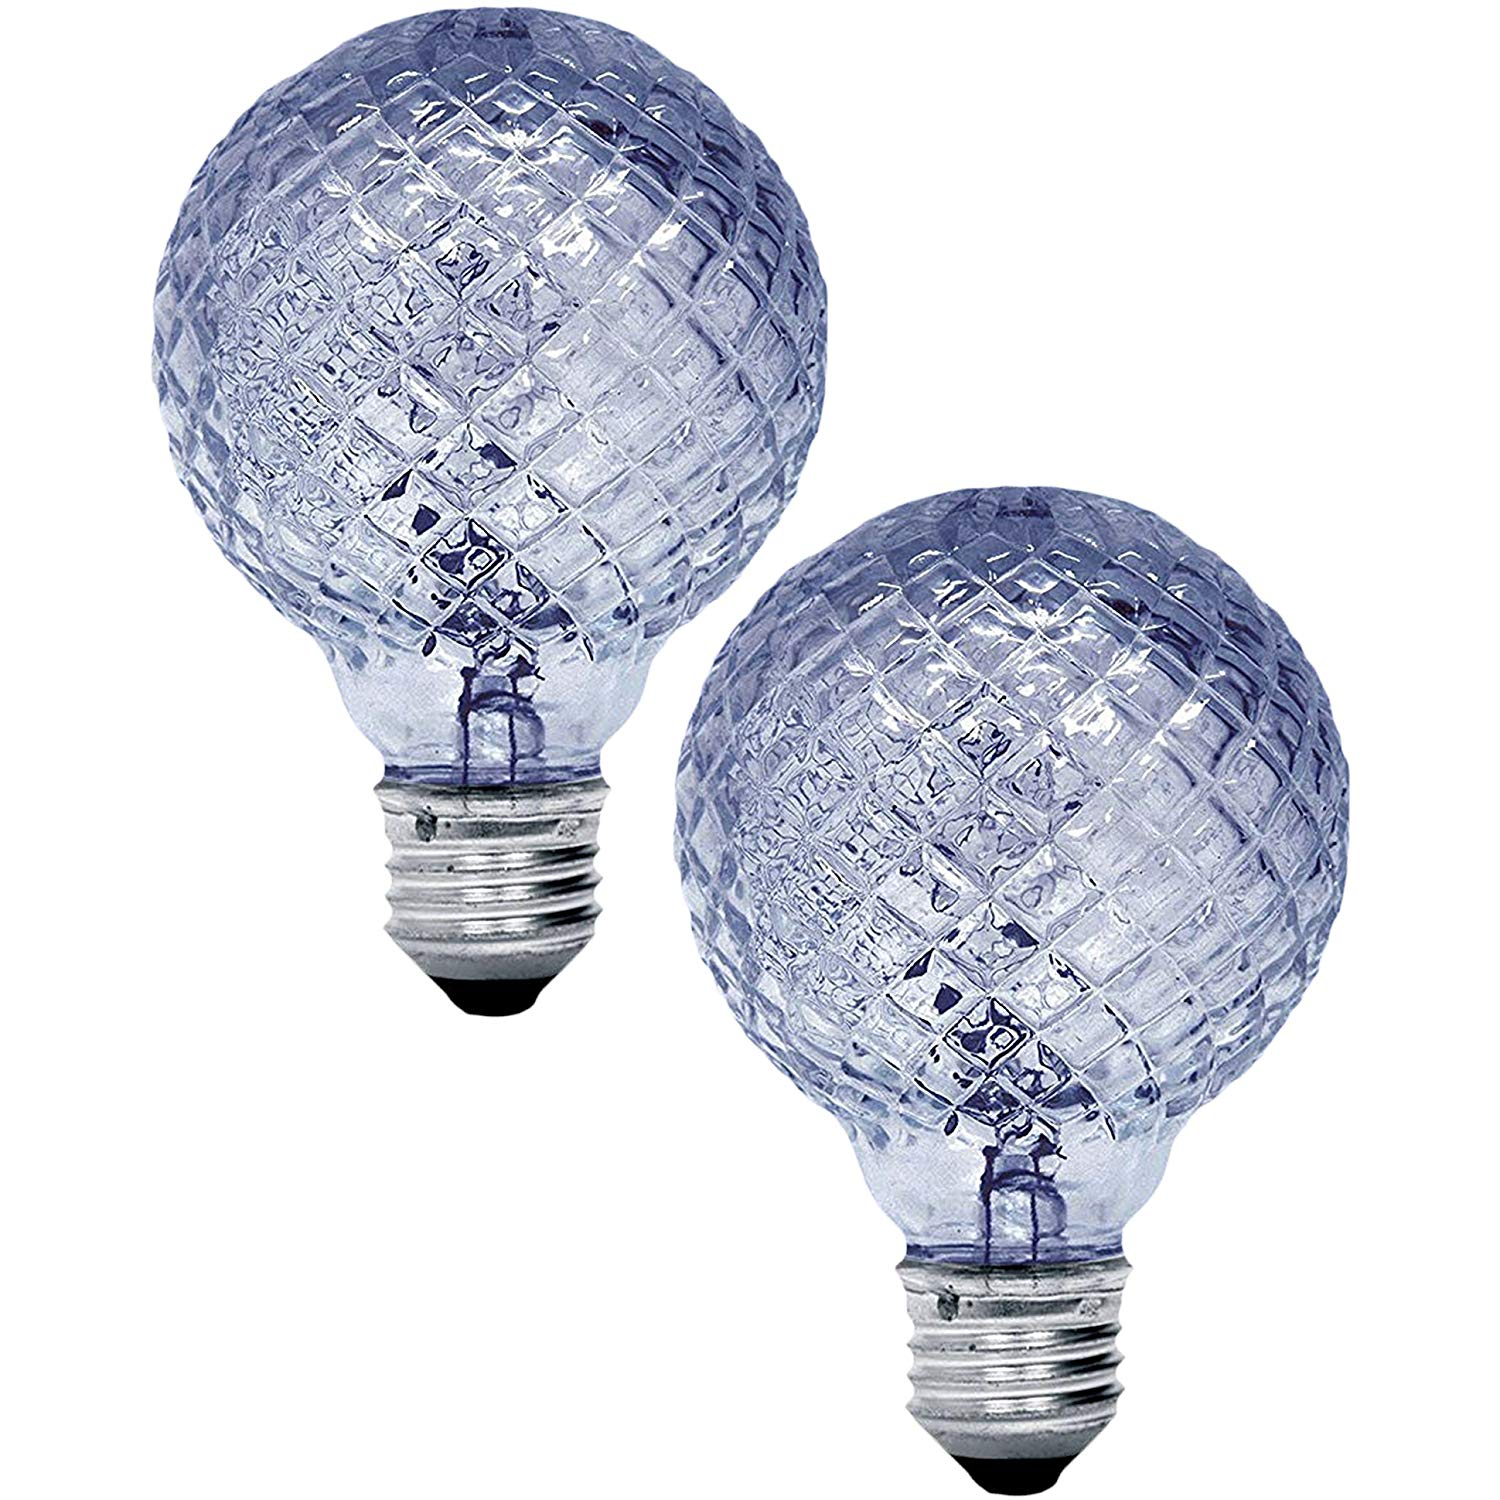 40 Watt In Lumen Ge Lighting 40 Watt 390 Lumen G25 Faceted Cut Glass Light Bulb With Medium Base 2 Bulbs